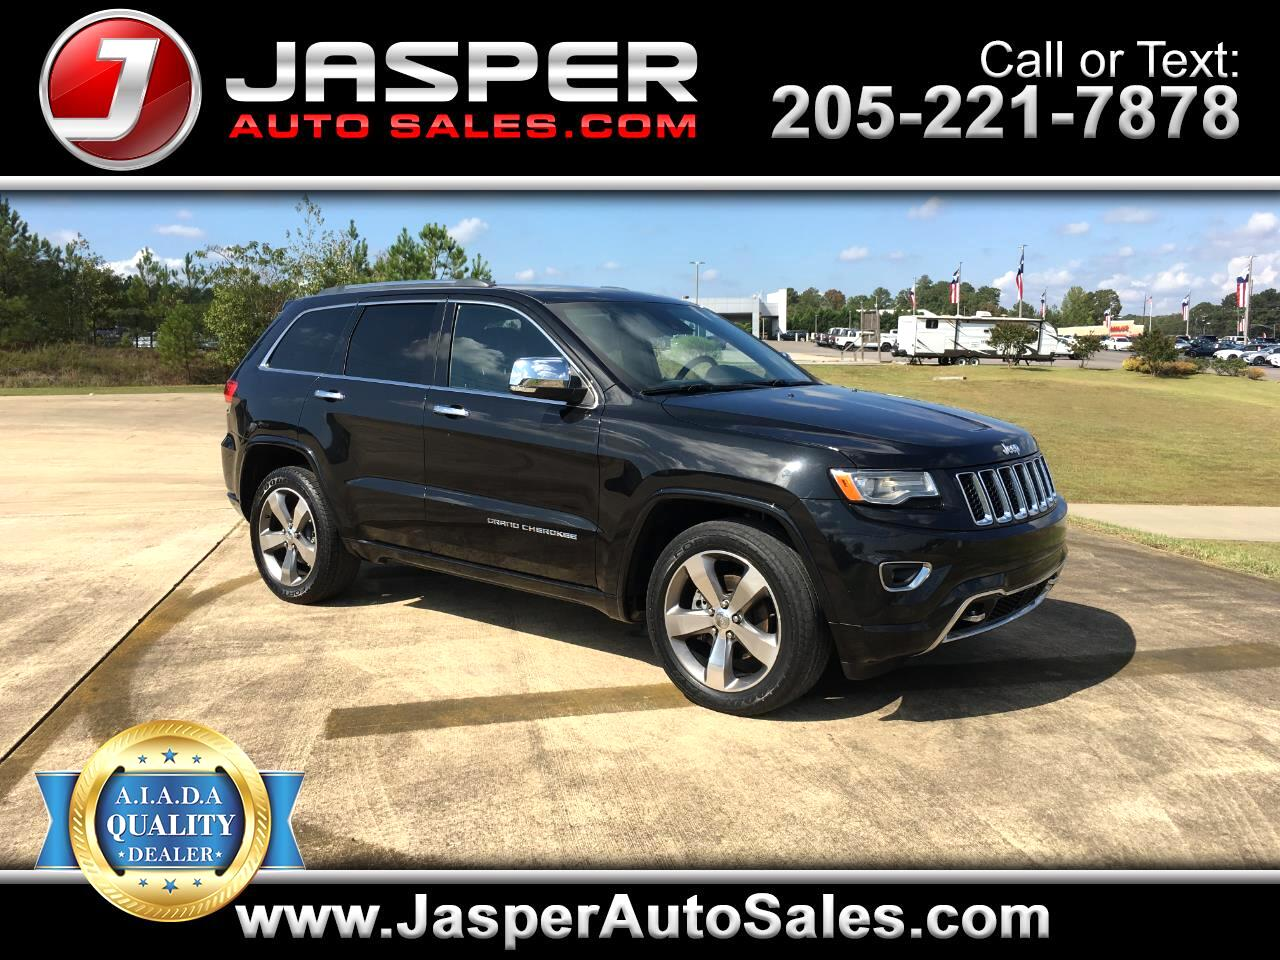 Jeep Grand Cherokee RWD 4dr Overland 2015